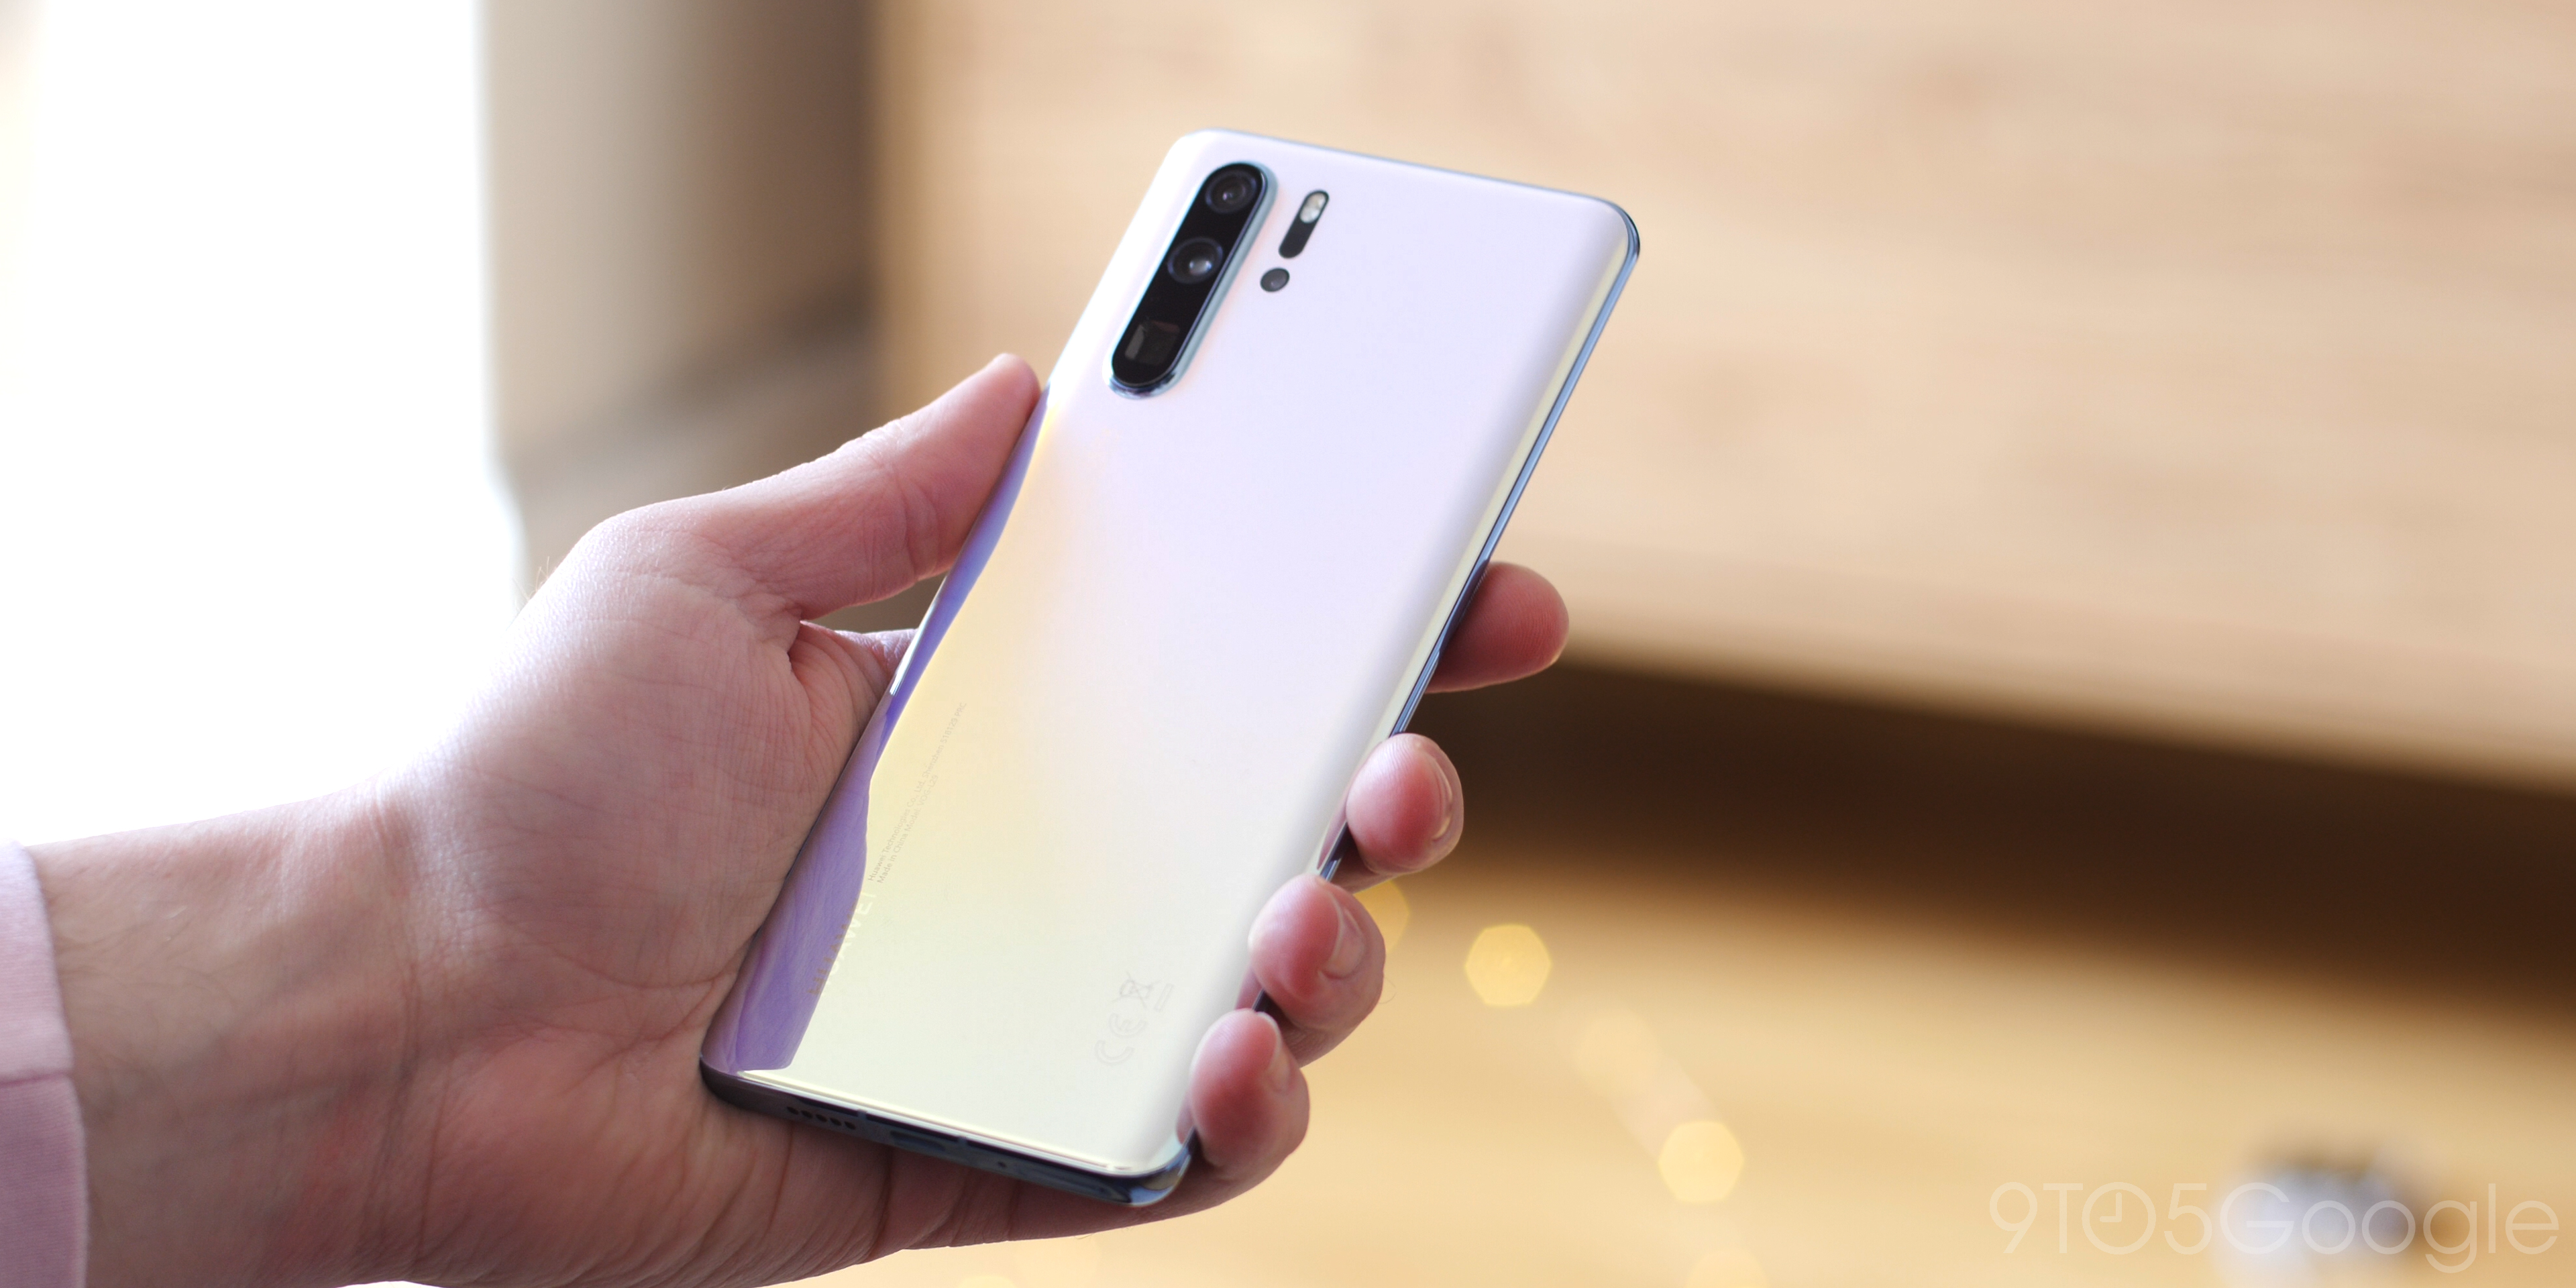 Huawei Smartphone Huawei P30 Pro Review Pushing Camera Boundaries Video 9to5google